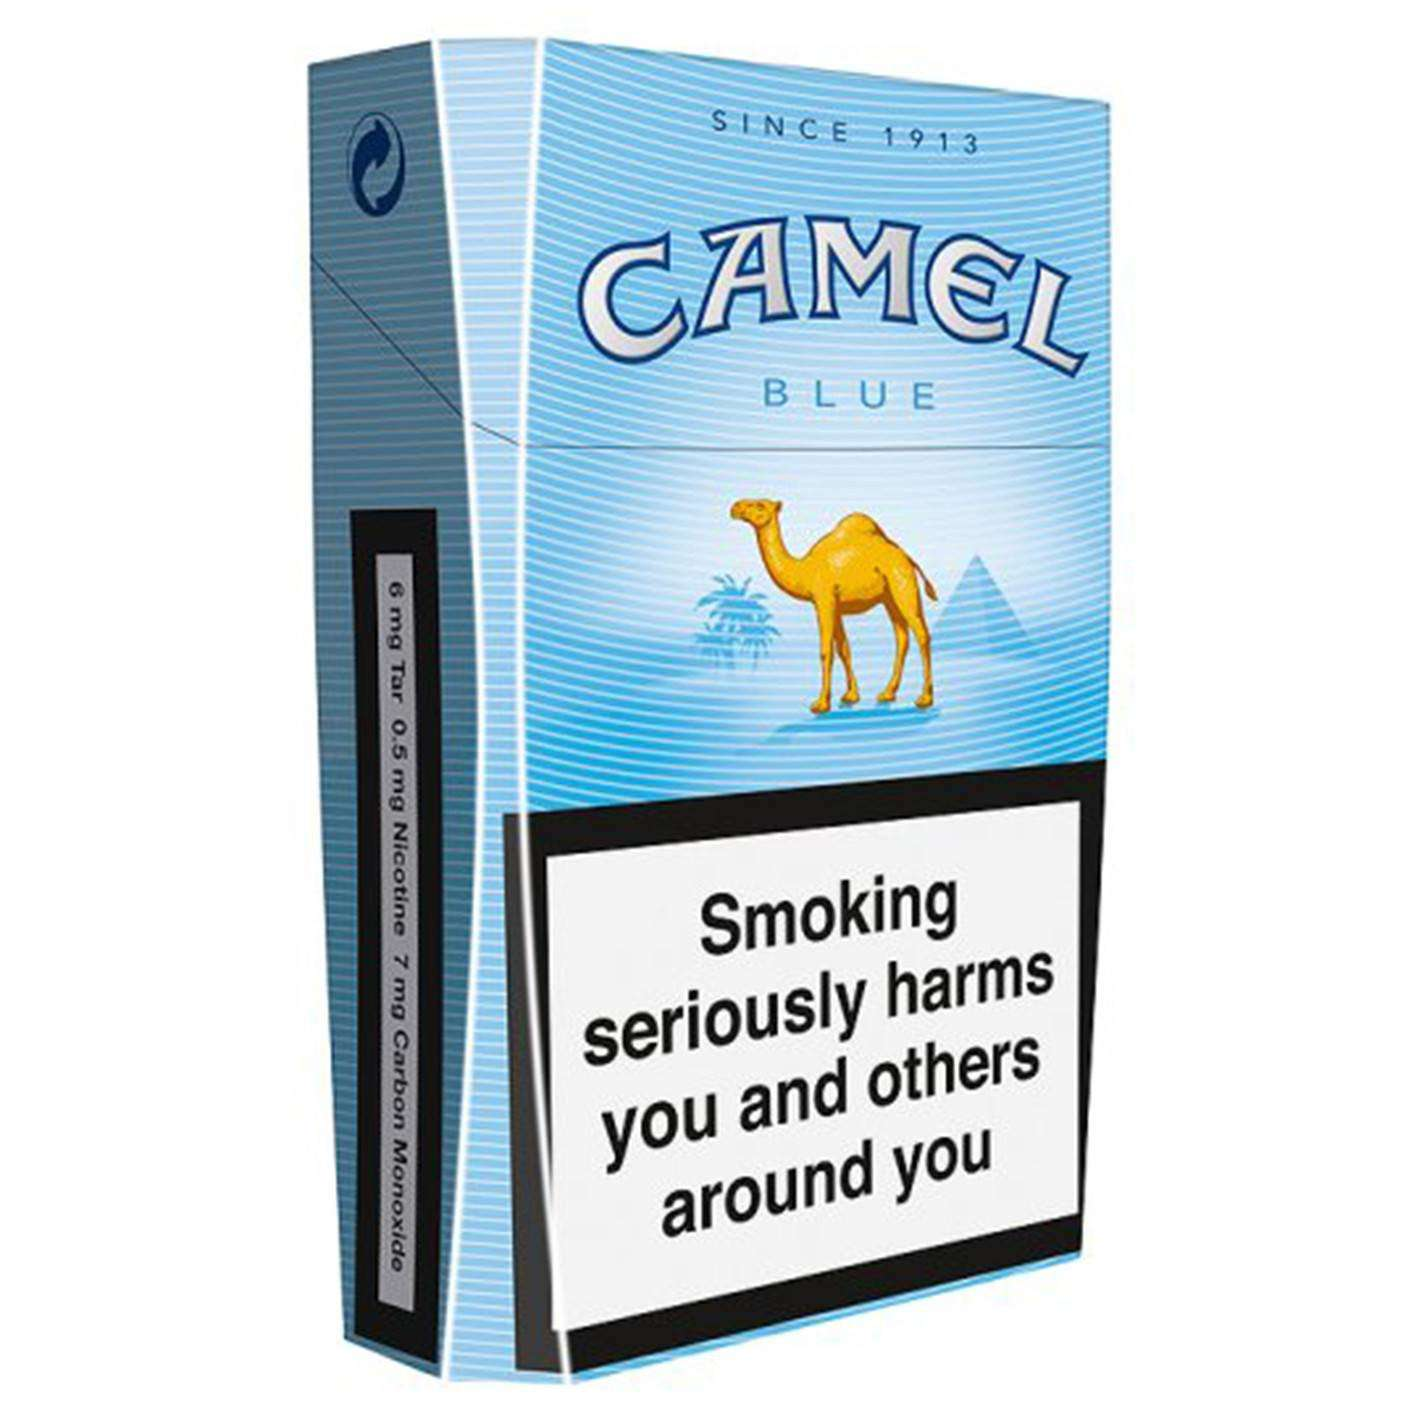 Camels Cigarette Delivery 24 Hour Camel Blue Cigarette Delivery Booze Up